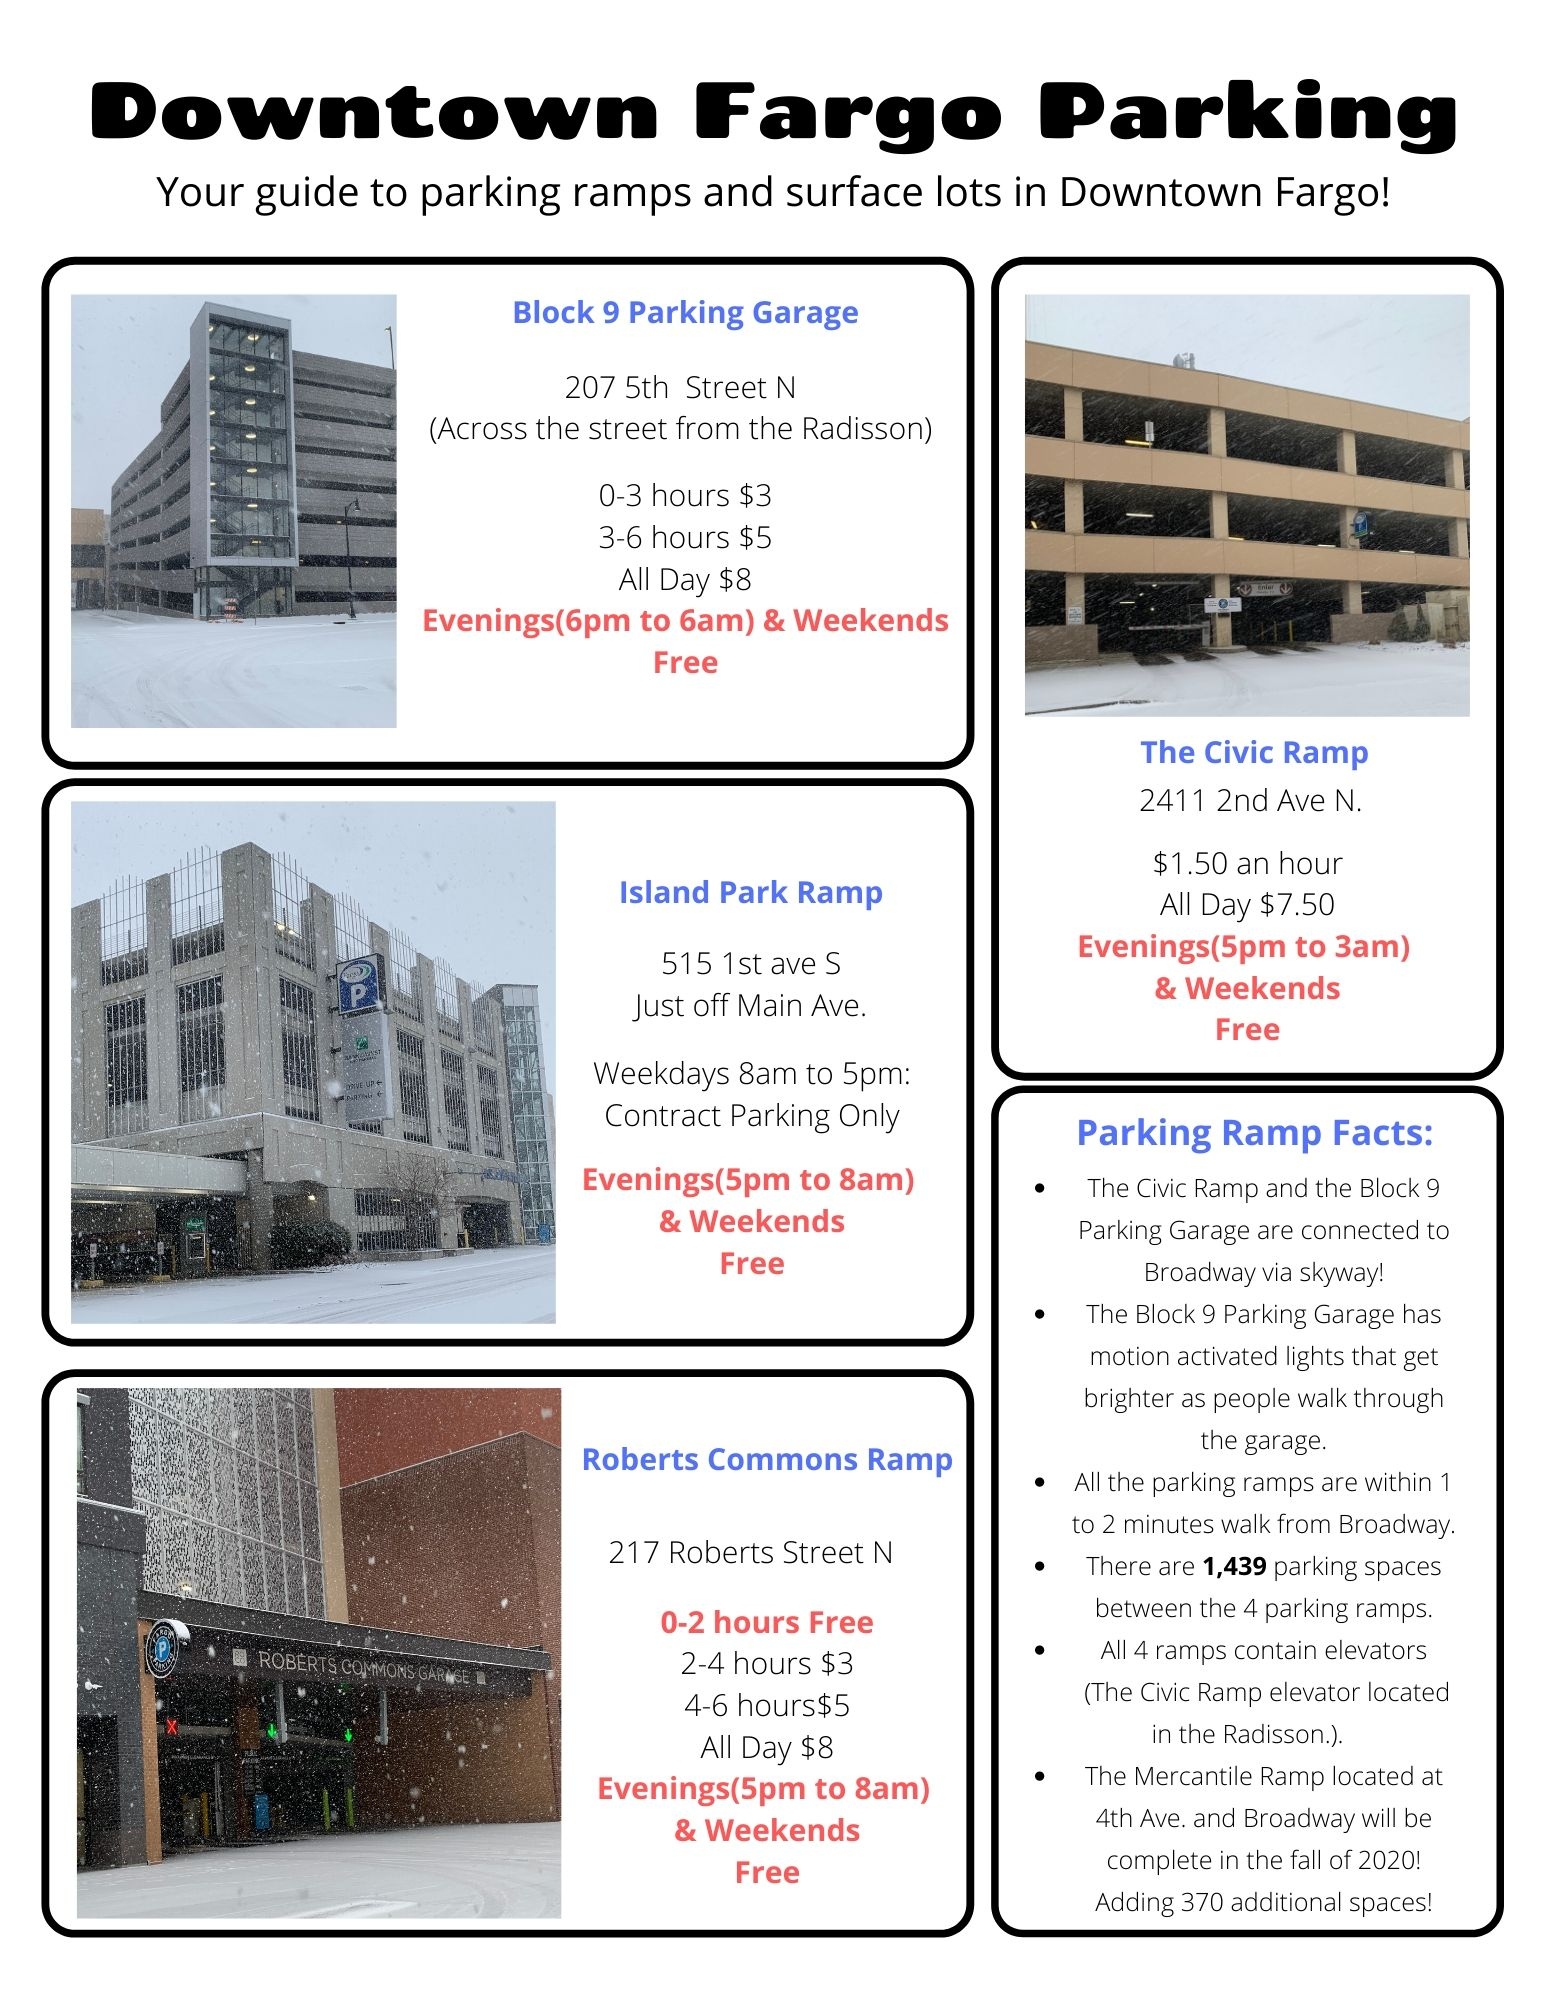 Downtown Fargo Parking Guide (3)